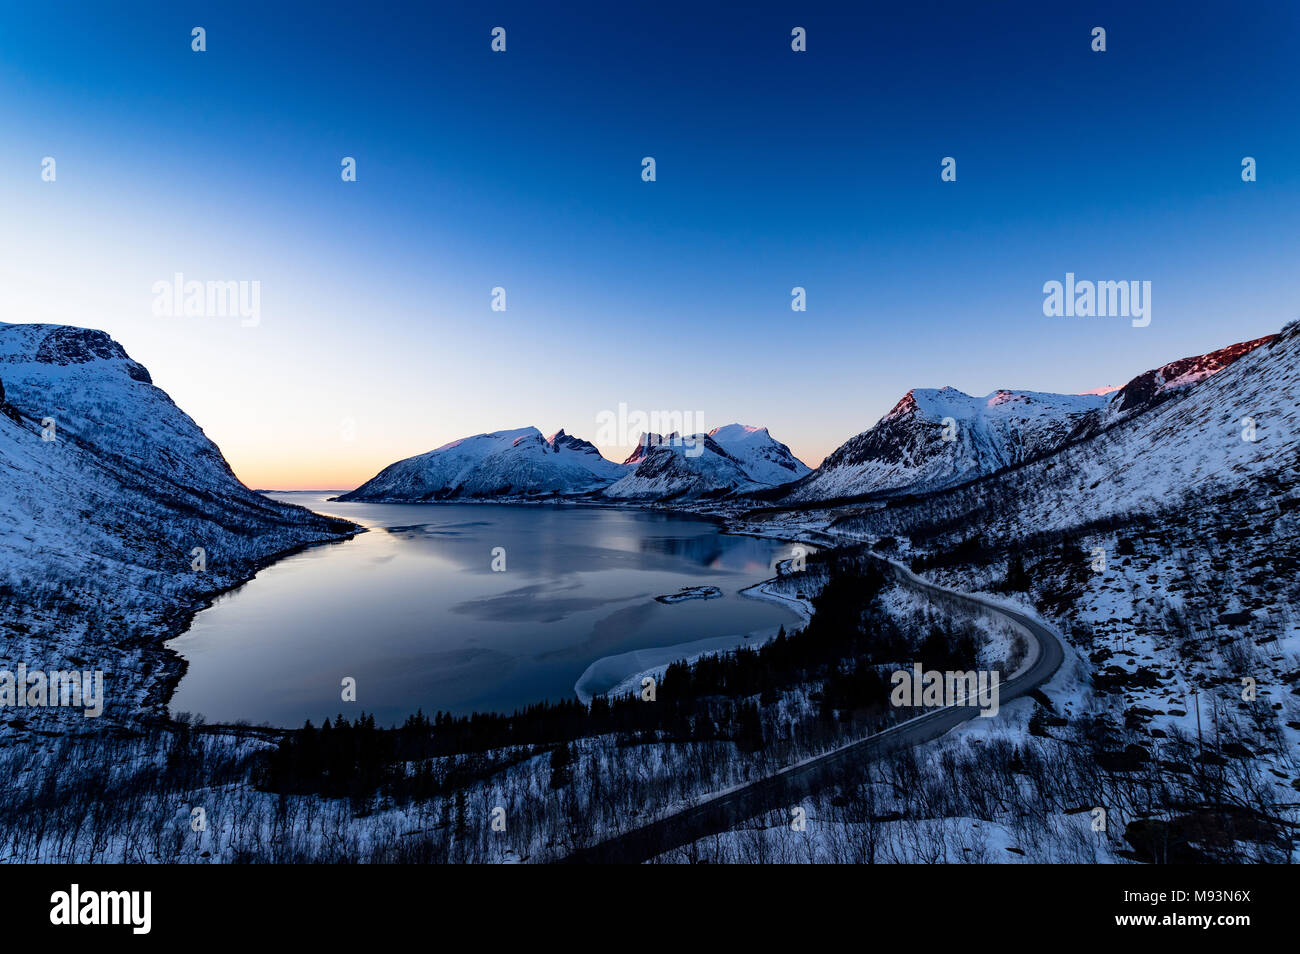 Winter scenery of Senja in Norway - Stock Image